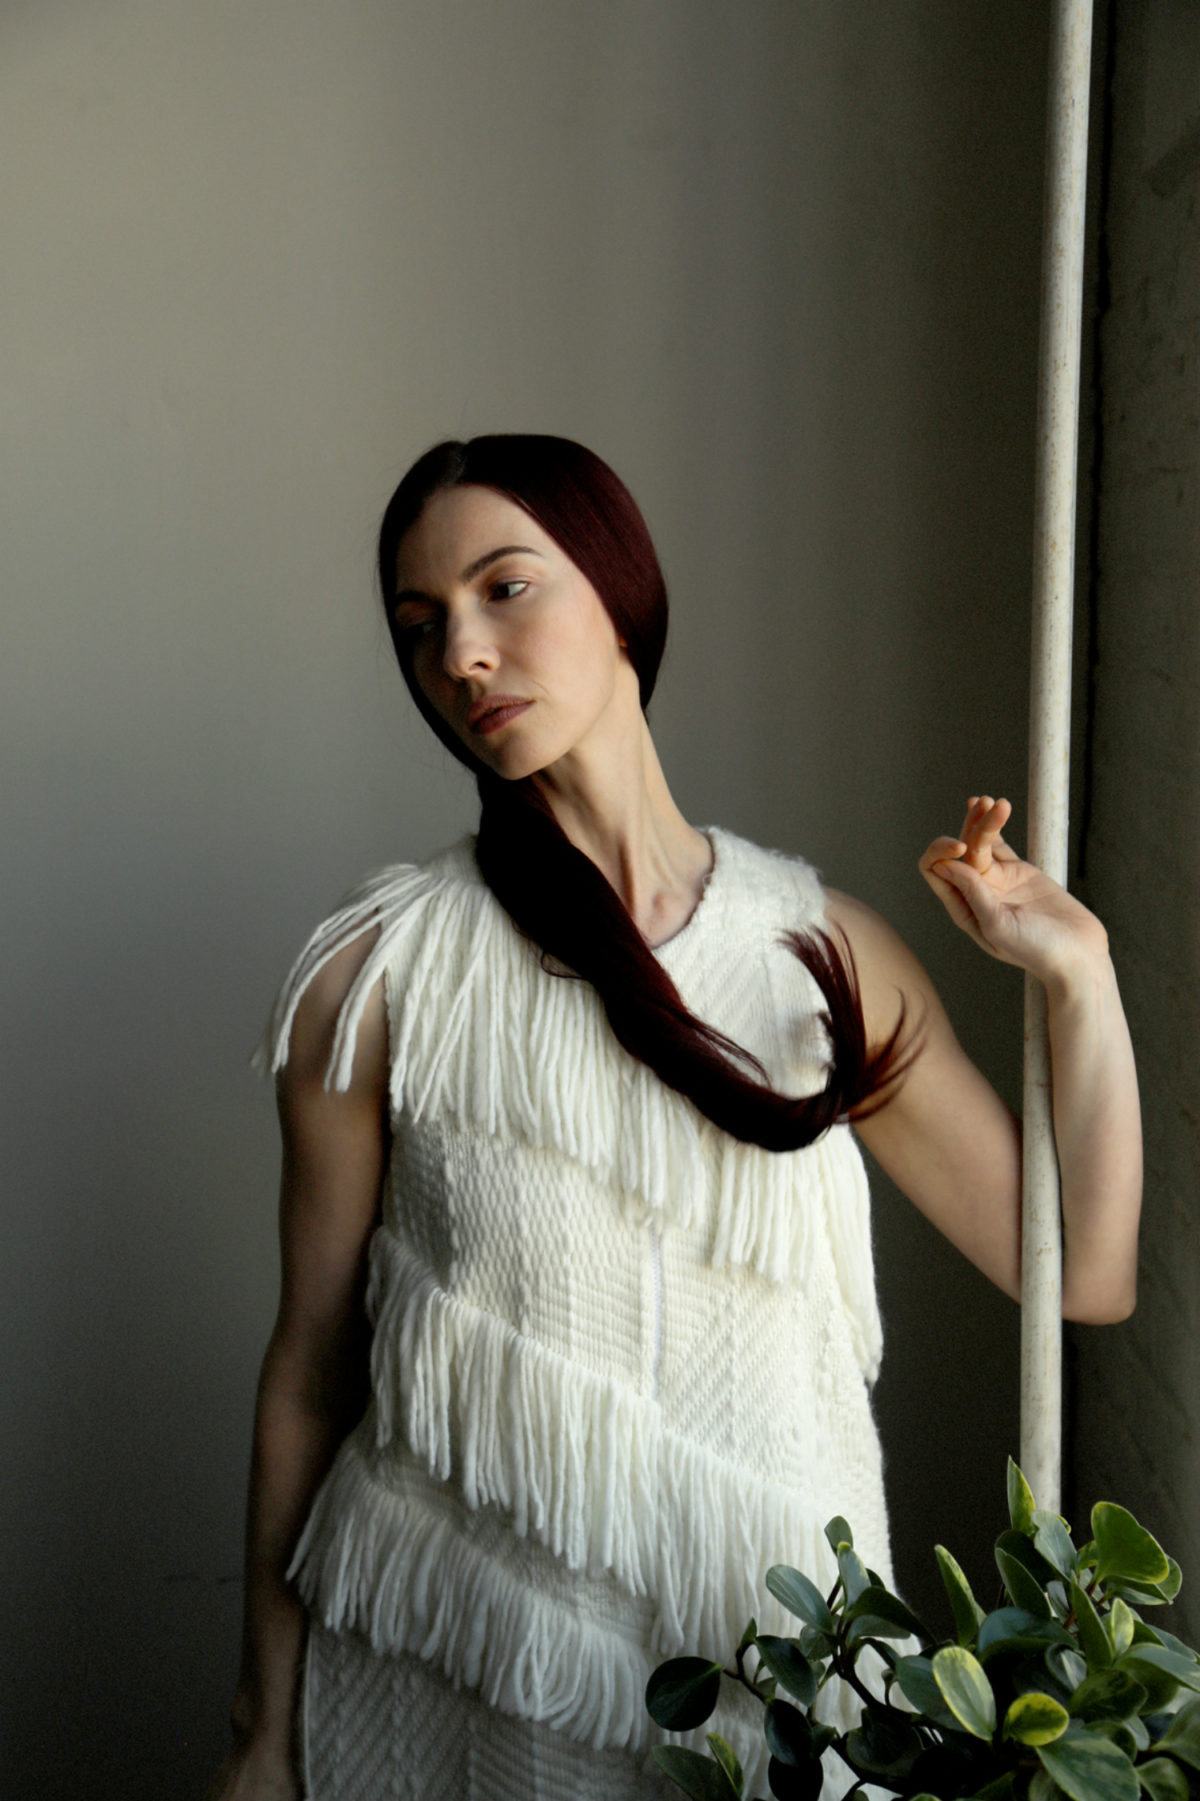 TWIN PEAKS ACTRESS AND DAVID LYNCH MUSE CHRYSTA BELL PHOTOGRAPHED BY RODERICK AICHINGER